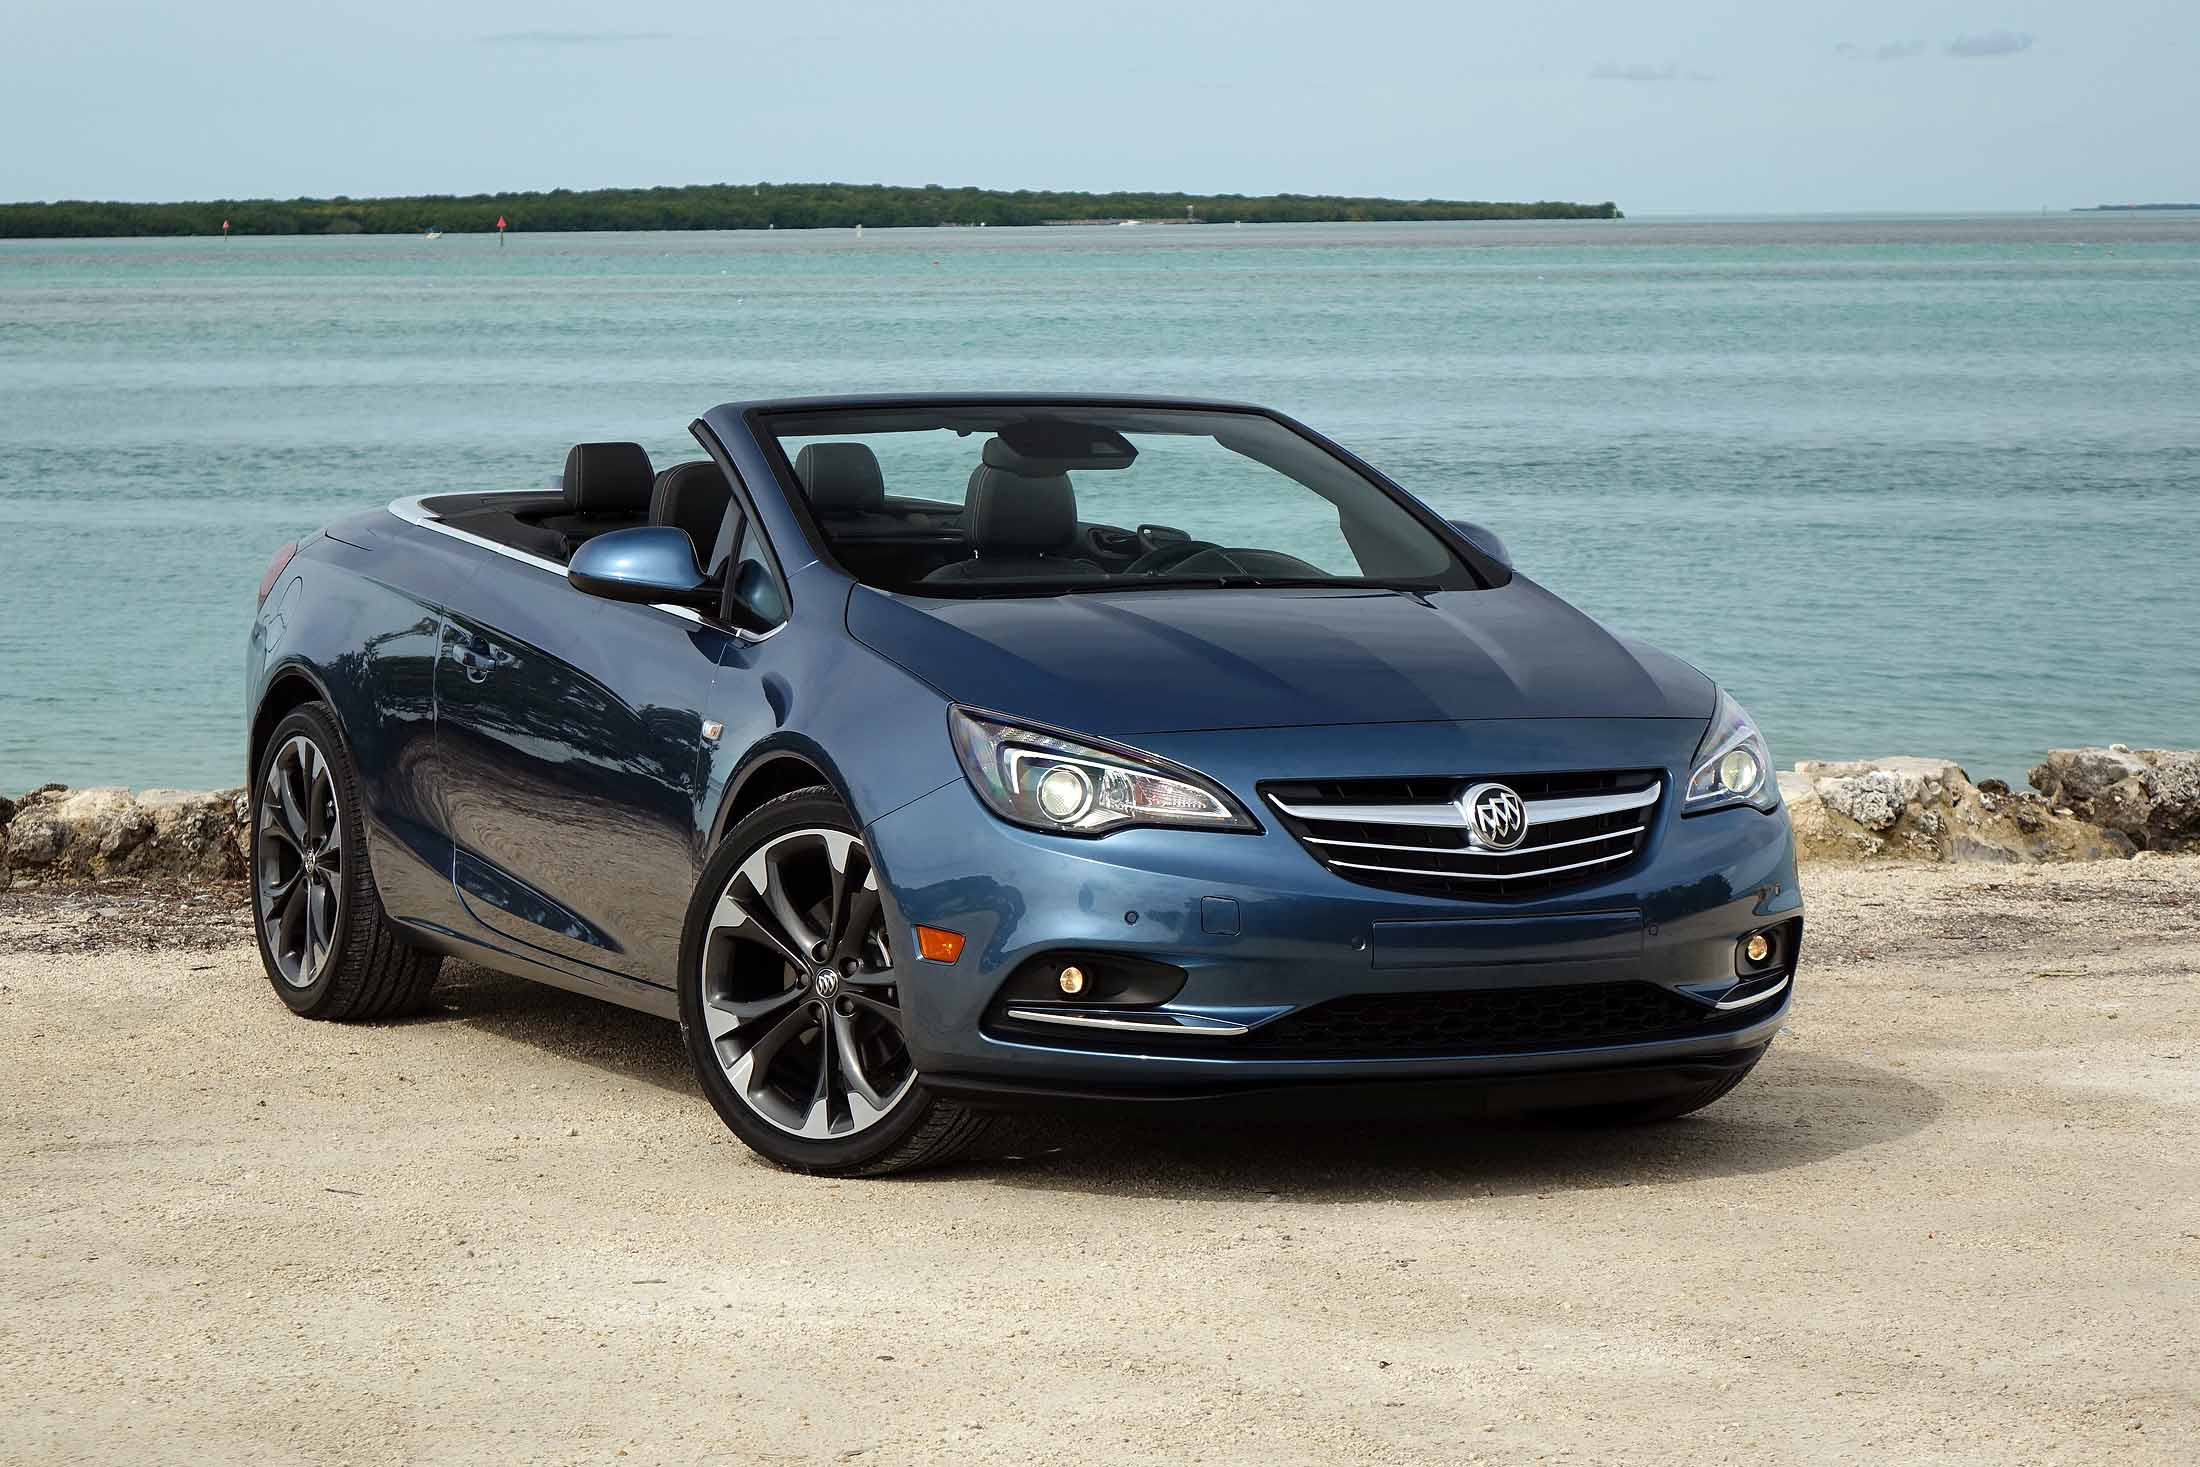 2016 Buick Cascada First Drive Review 2021 Buick Cascada Features, Gas Type, Hp